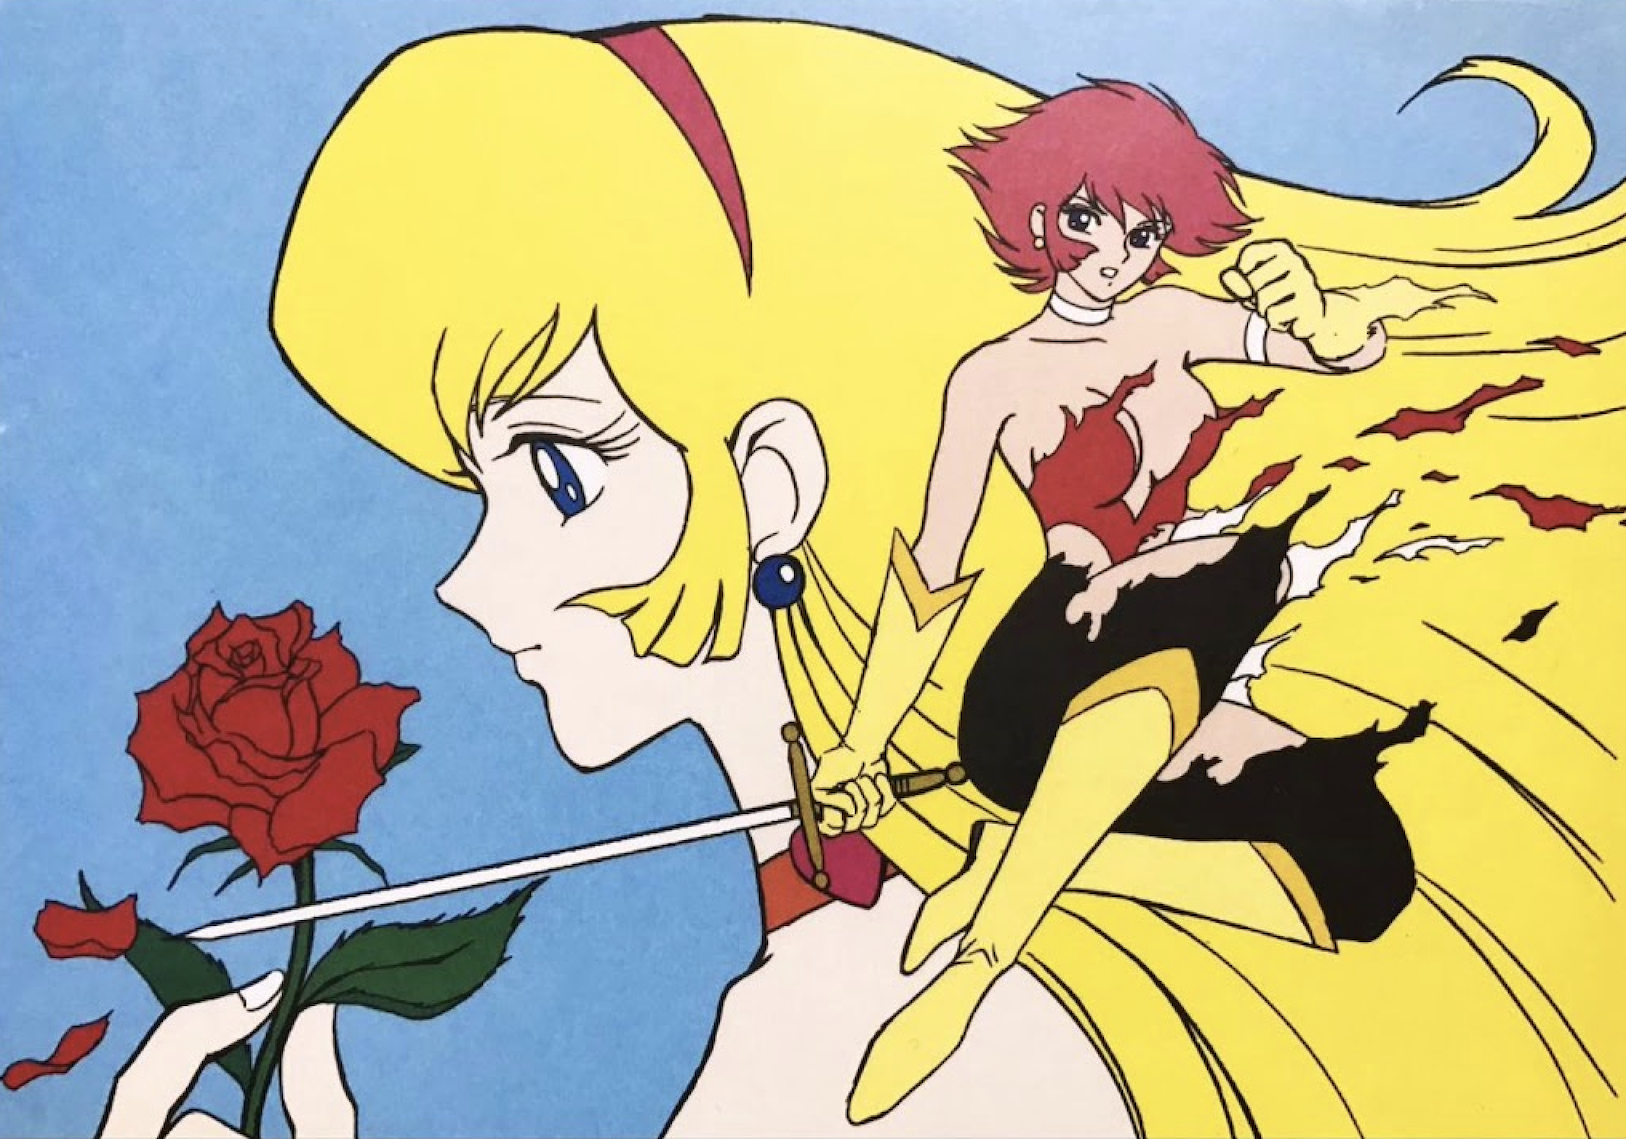 A profile of Honey from Cutie Honey holding a rose.  A full body image of Honey in her magical girl form is overlapping.  She holds a sword and her outfit is being torn off.